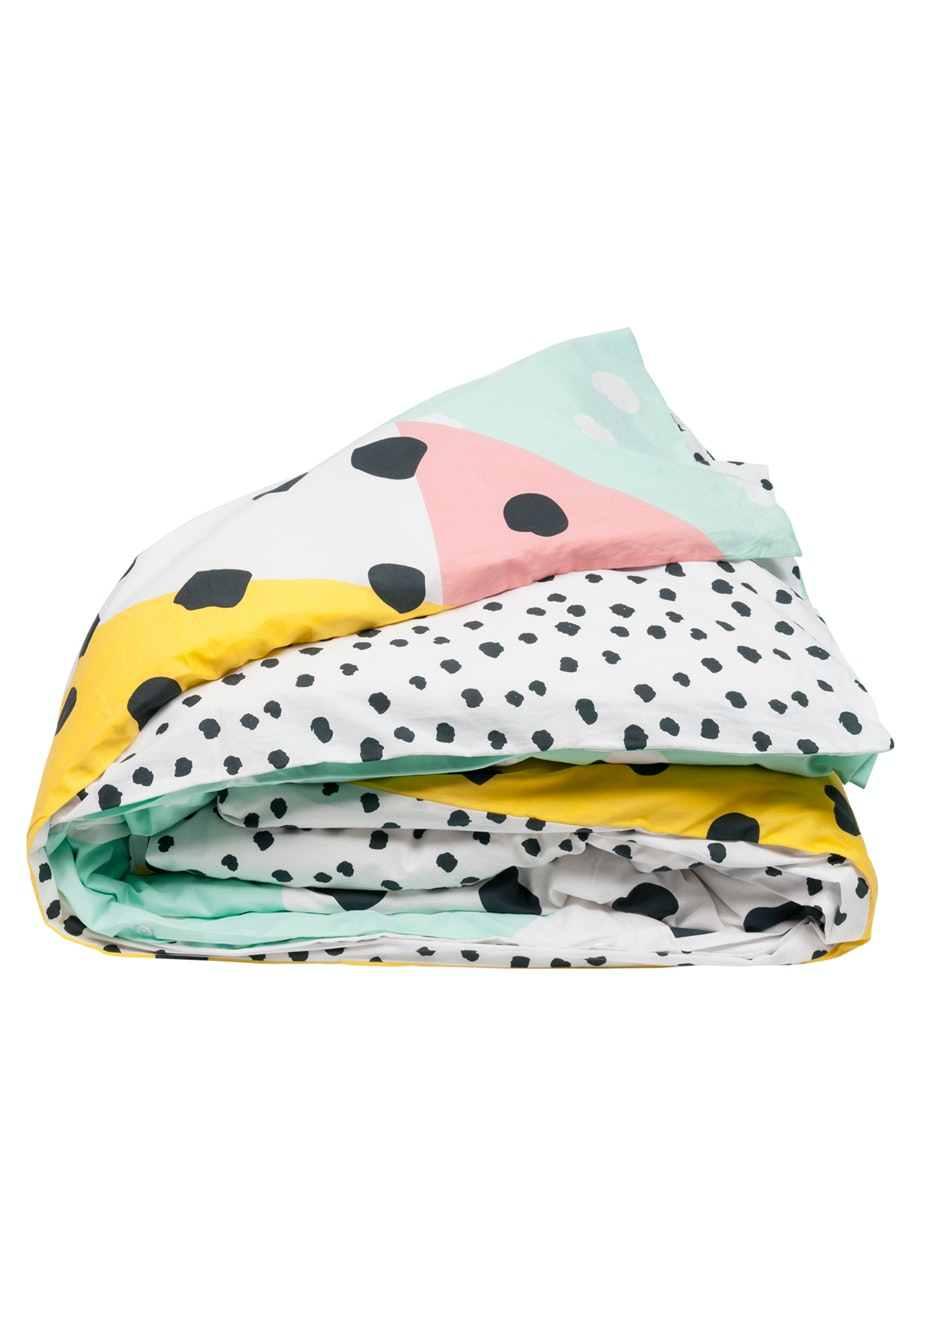 General Eclectic - Pebbles Duvet Cover - King